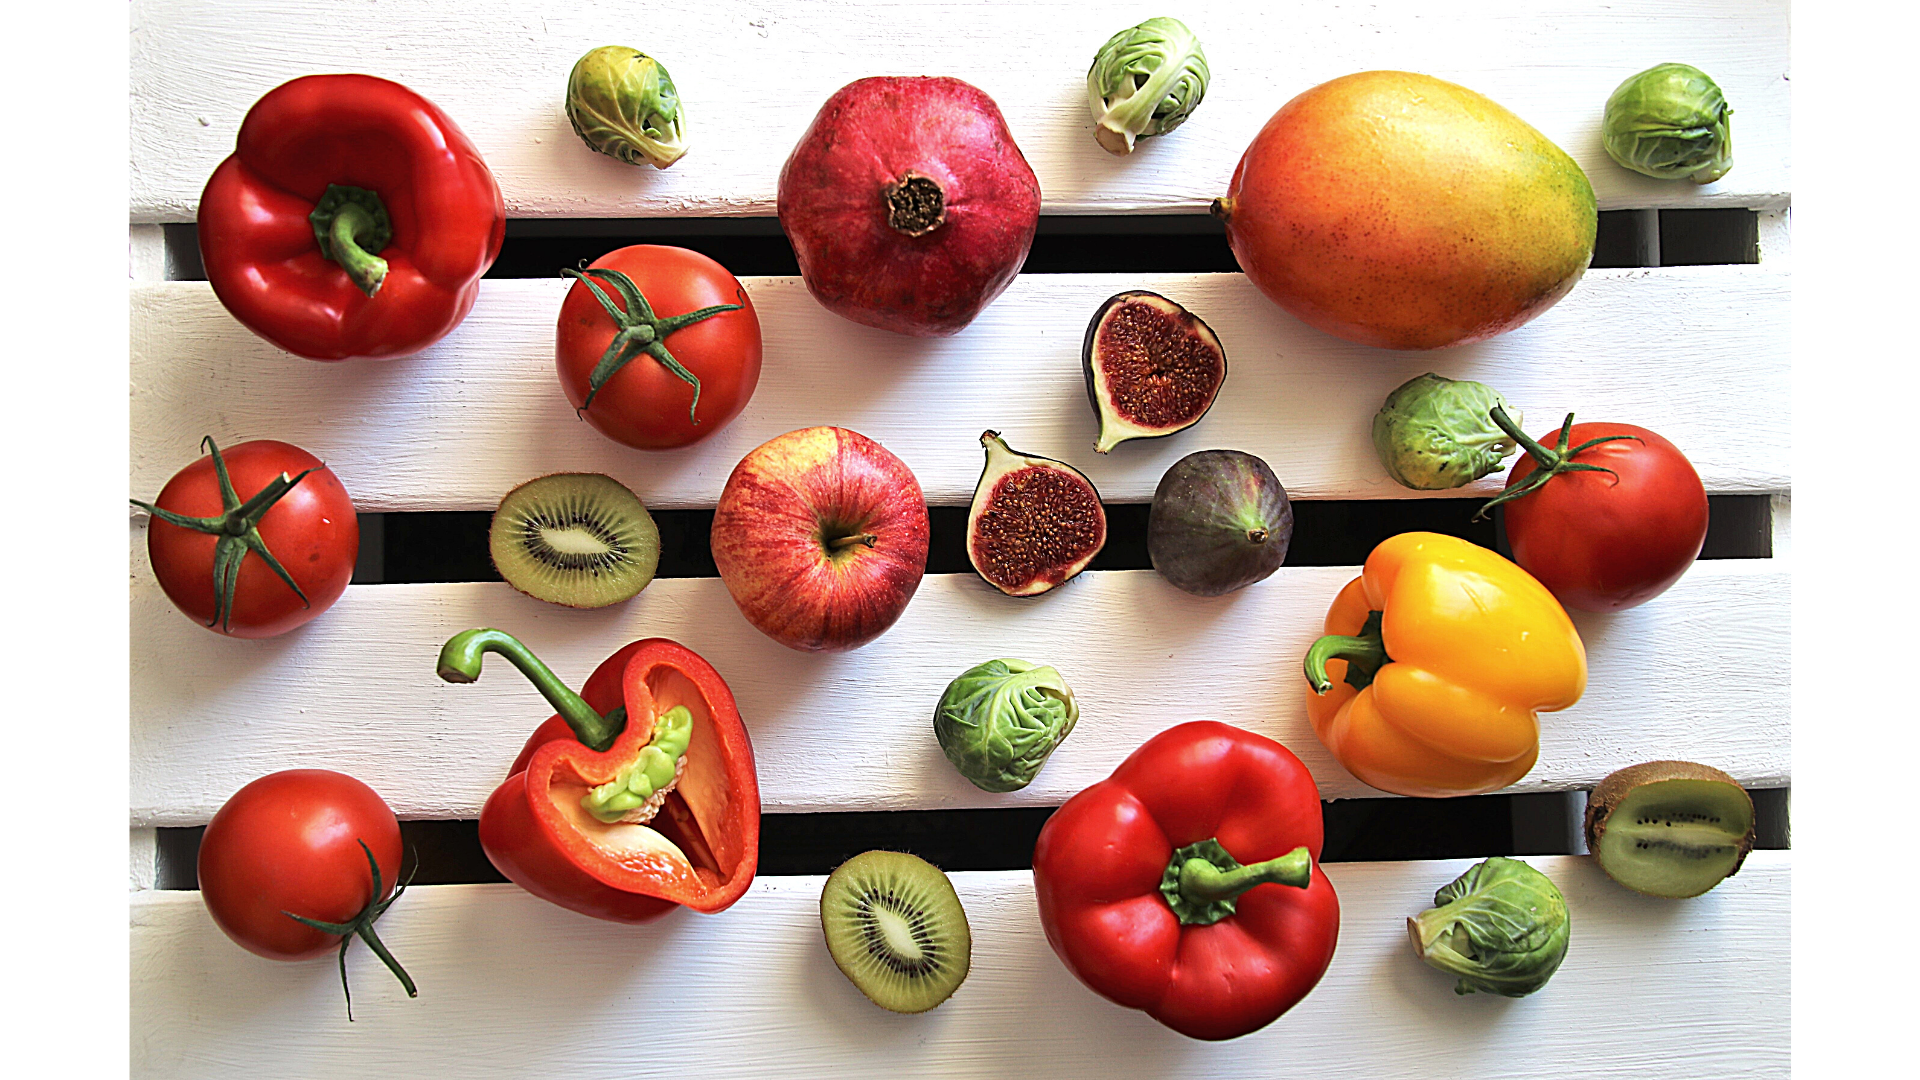 peppers, pomegranates, mangos, figs, and other fruit against a white background